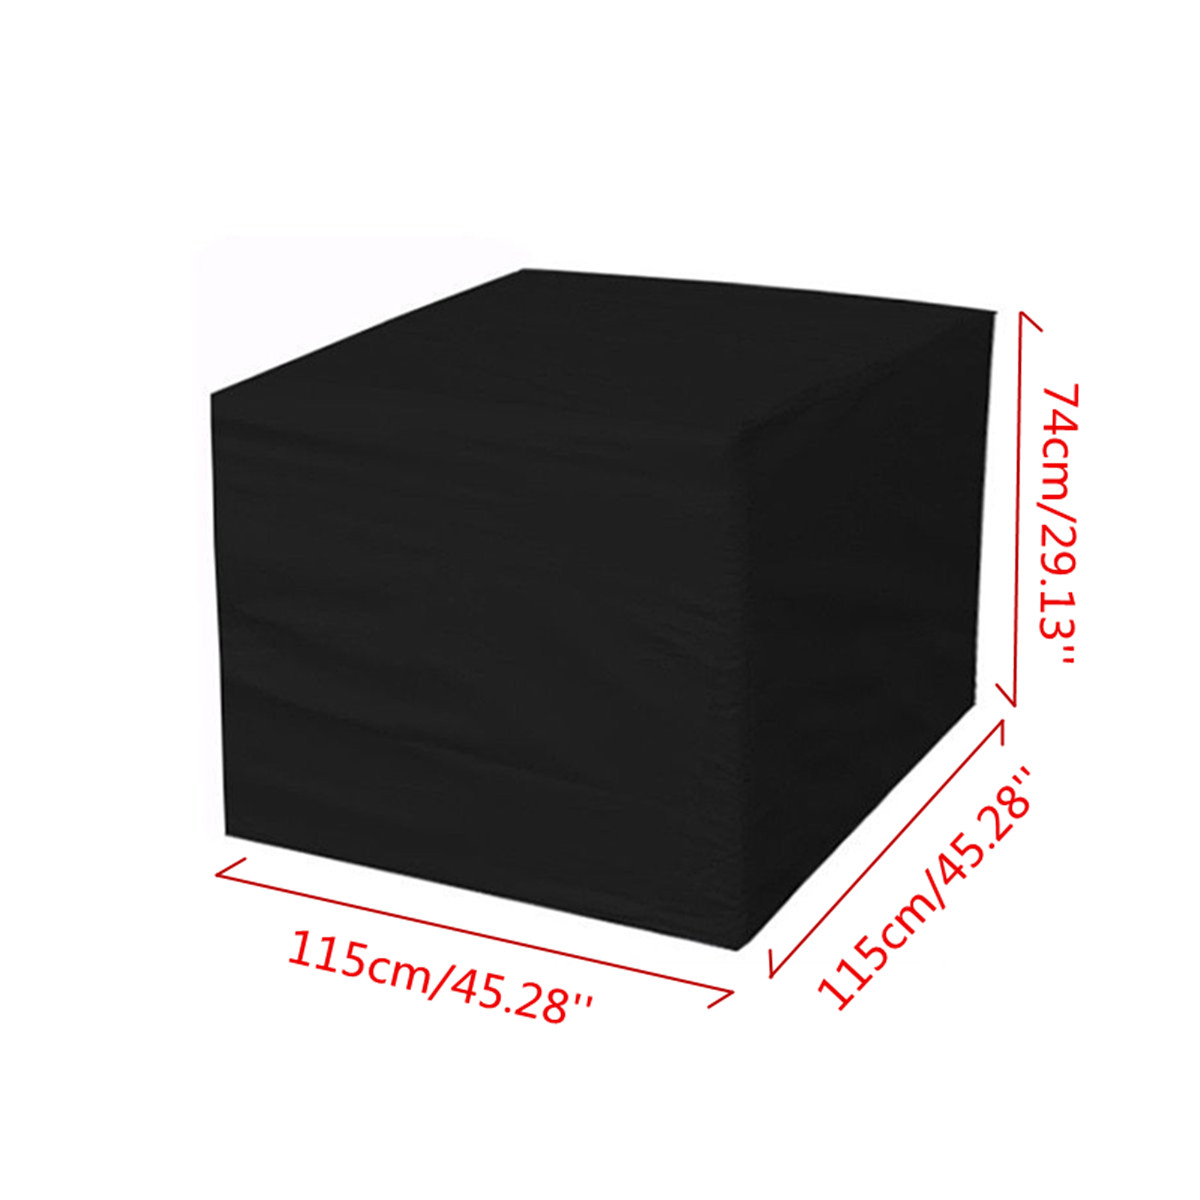 IPRee® 115x115x74cm Outdoor Garden Yard Patio Waterproof Cube Table Furniture Cover Rain Protection